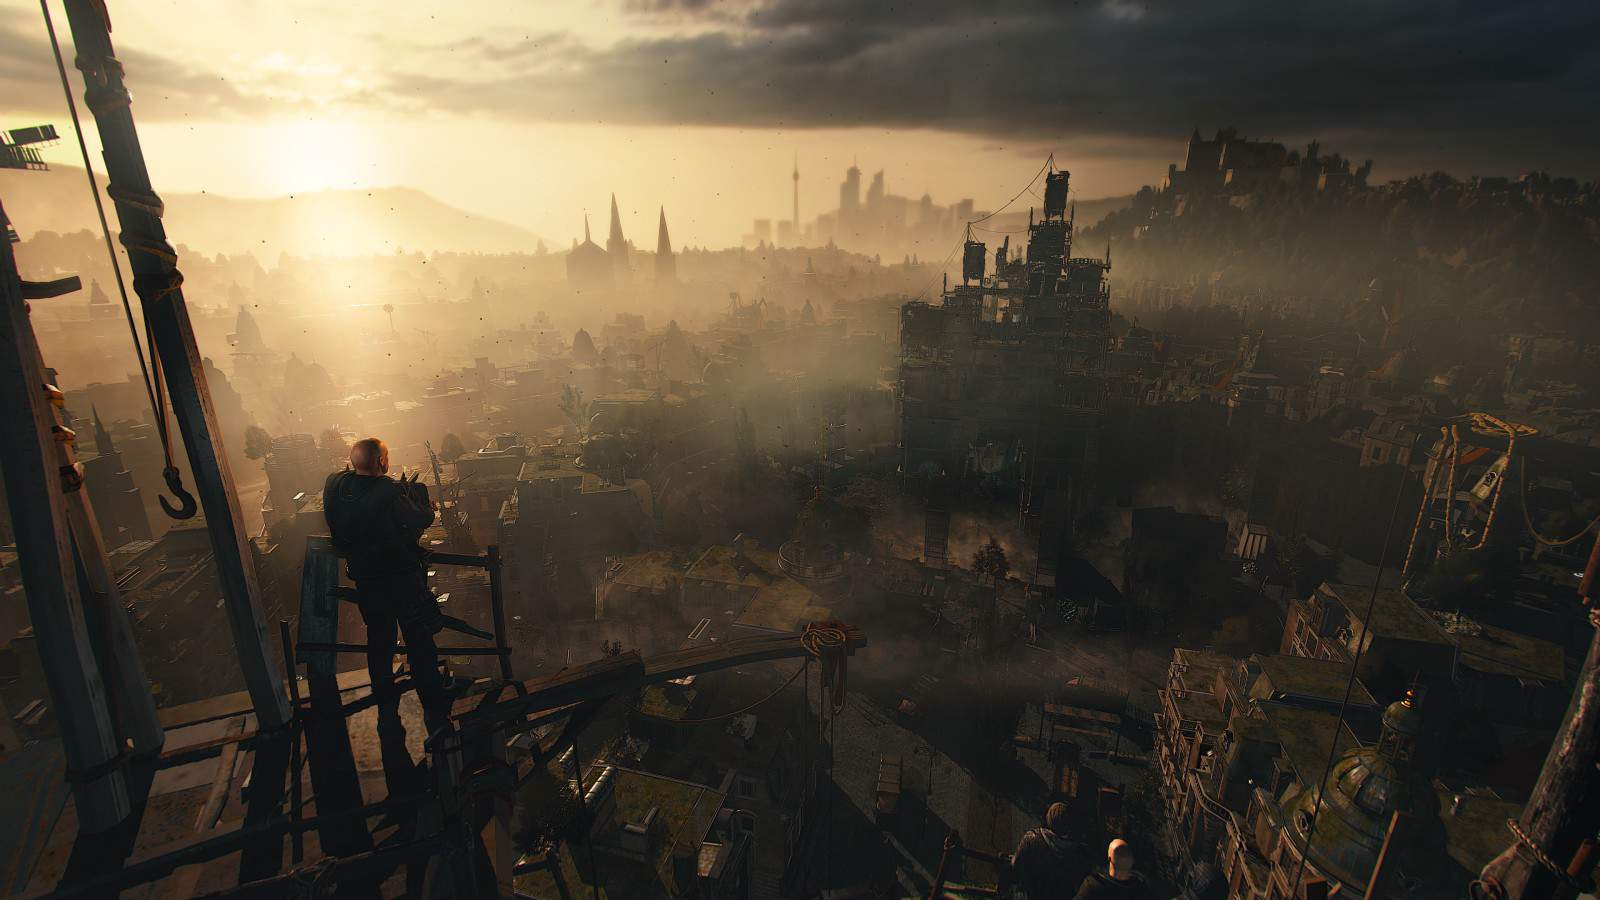 dying light 2 city